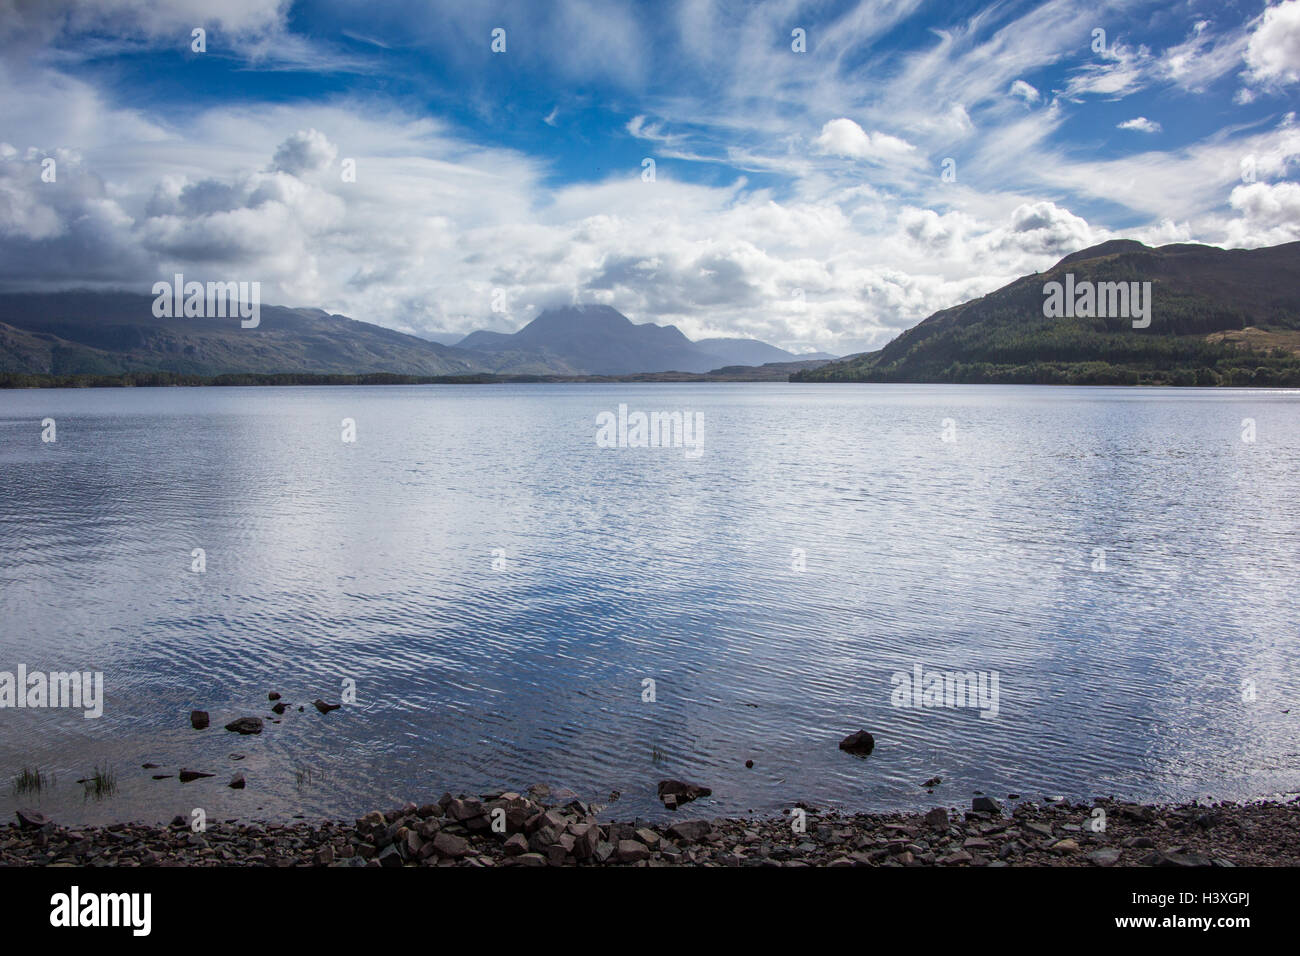 Loch Maree in Wester Ross - Stock Image